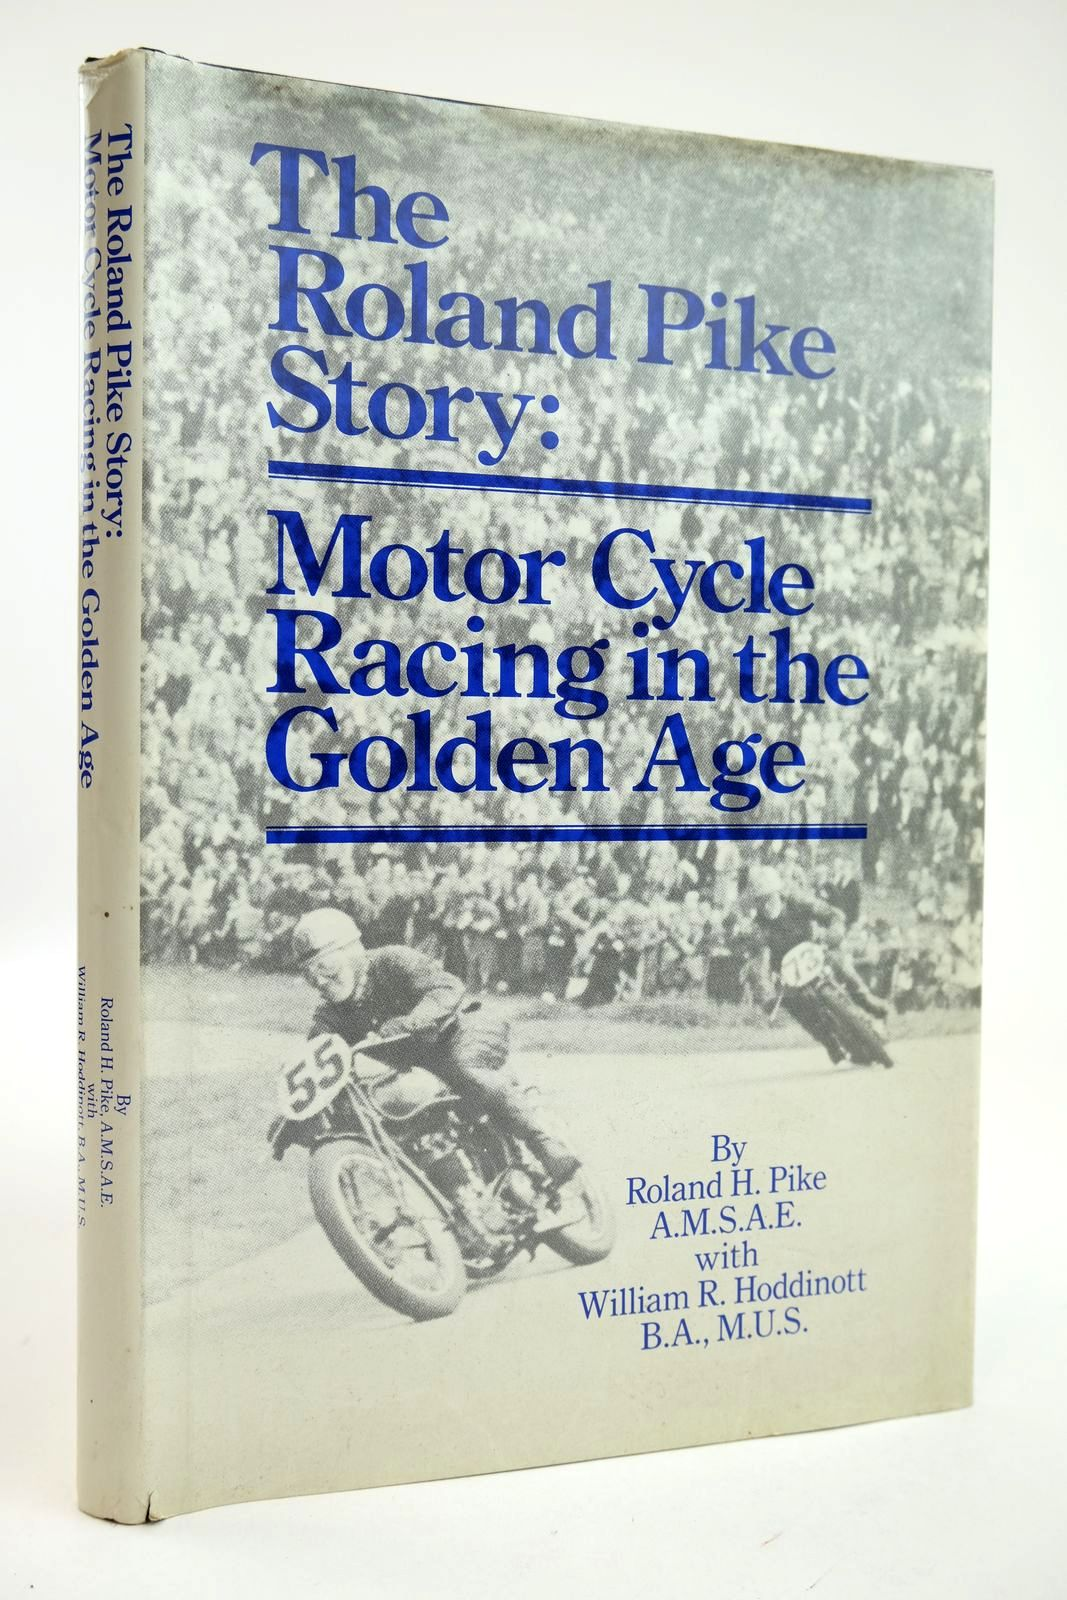 Photo of THE ROLAND PIKE STORY MOTOR CYCLE RACING IN THE GOLDEN AGE